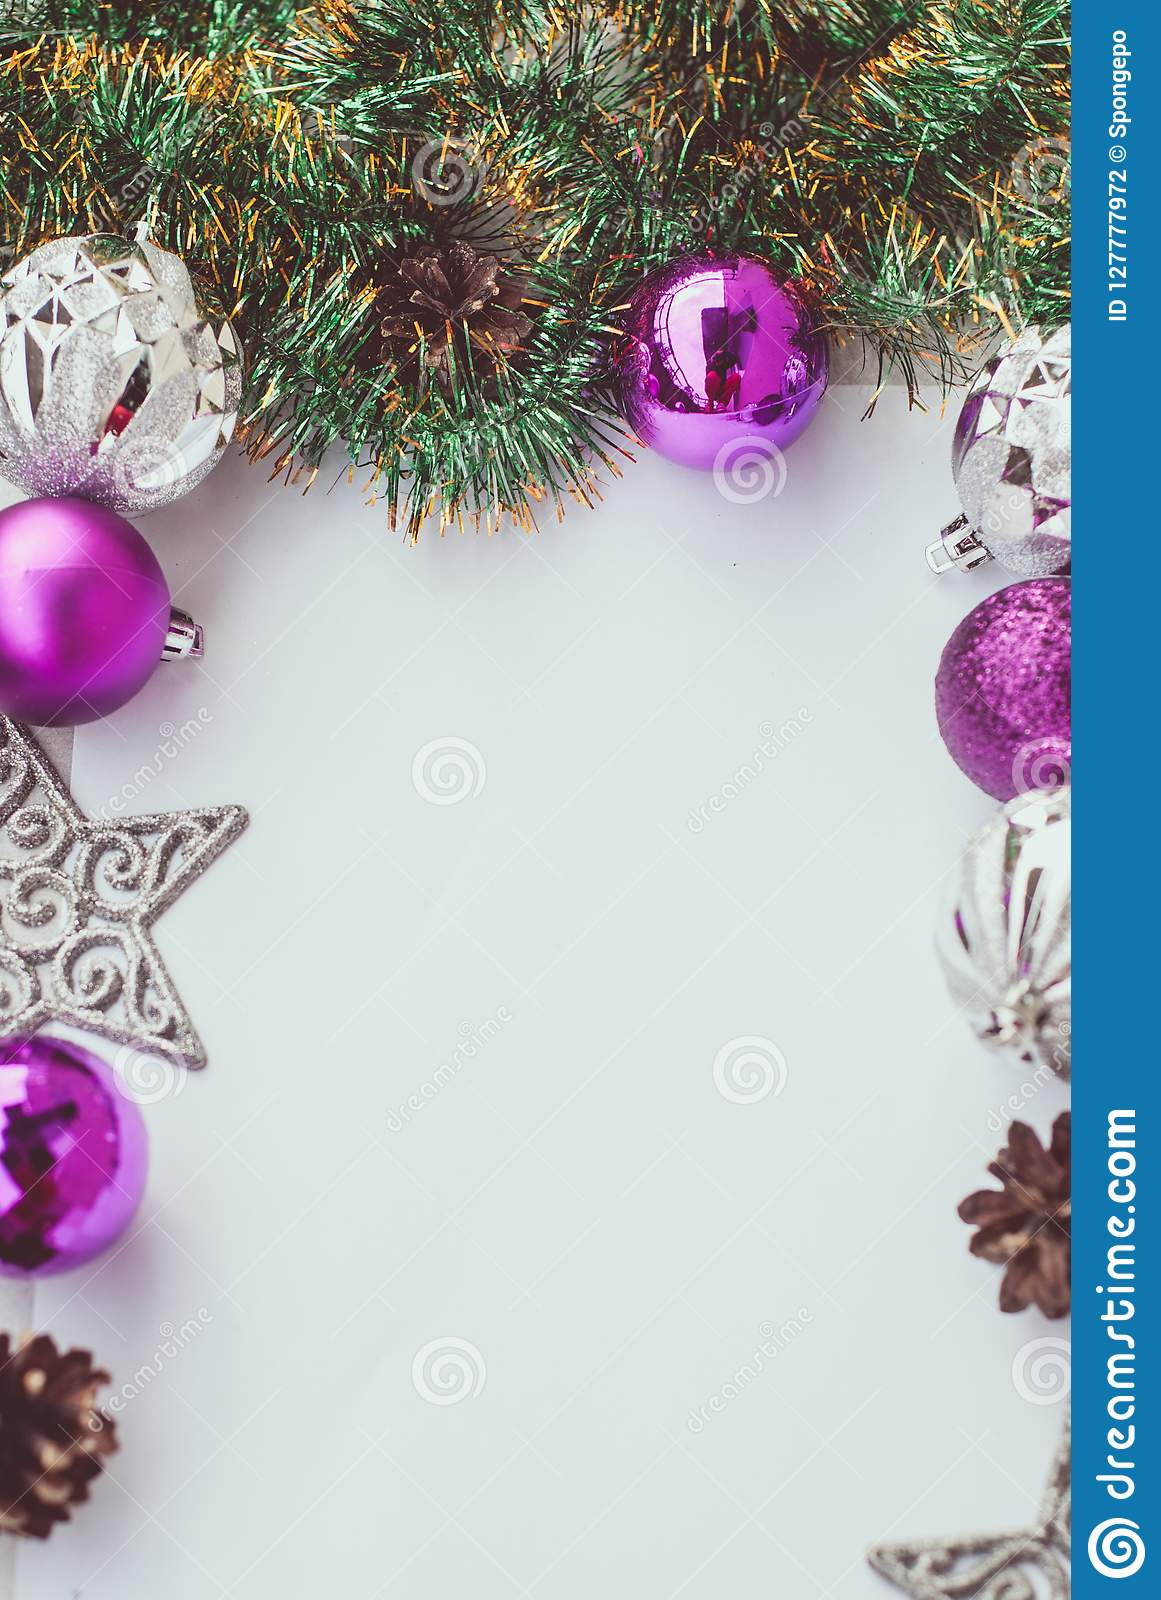 New Year Theme Christmas Tree Purple And Silver Decorations Balls On White Retro Wood Background Stock Photo Image Of Pattern Merry 127777972